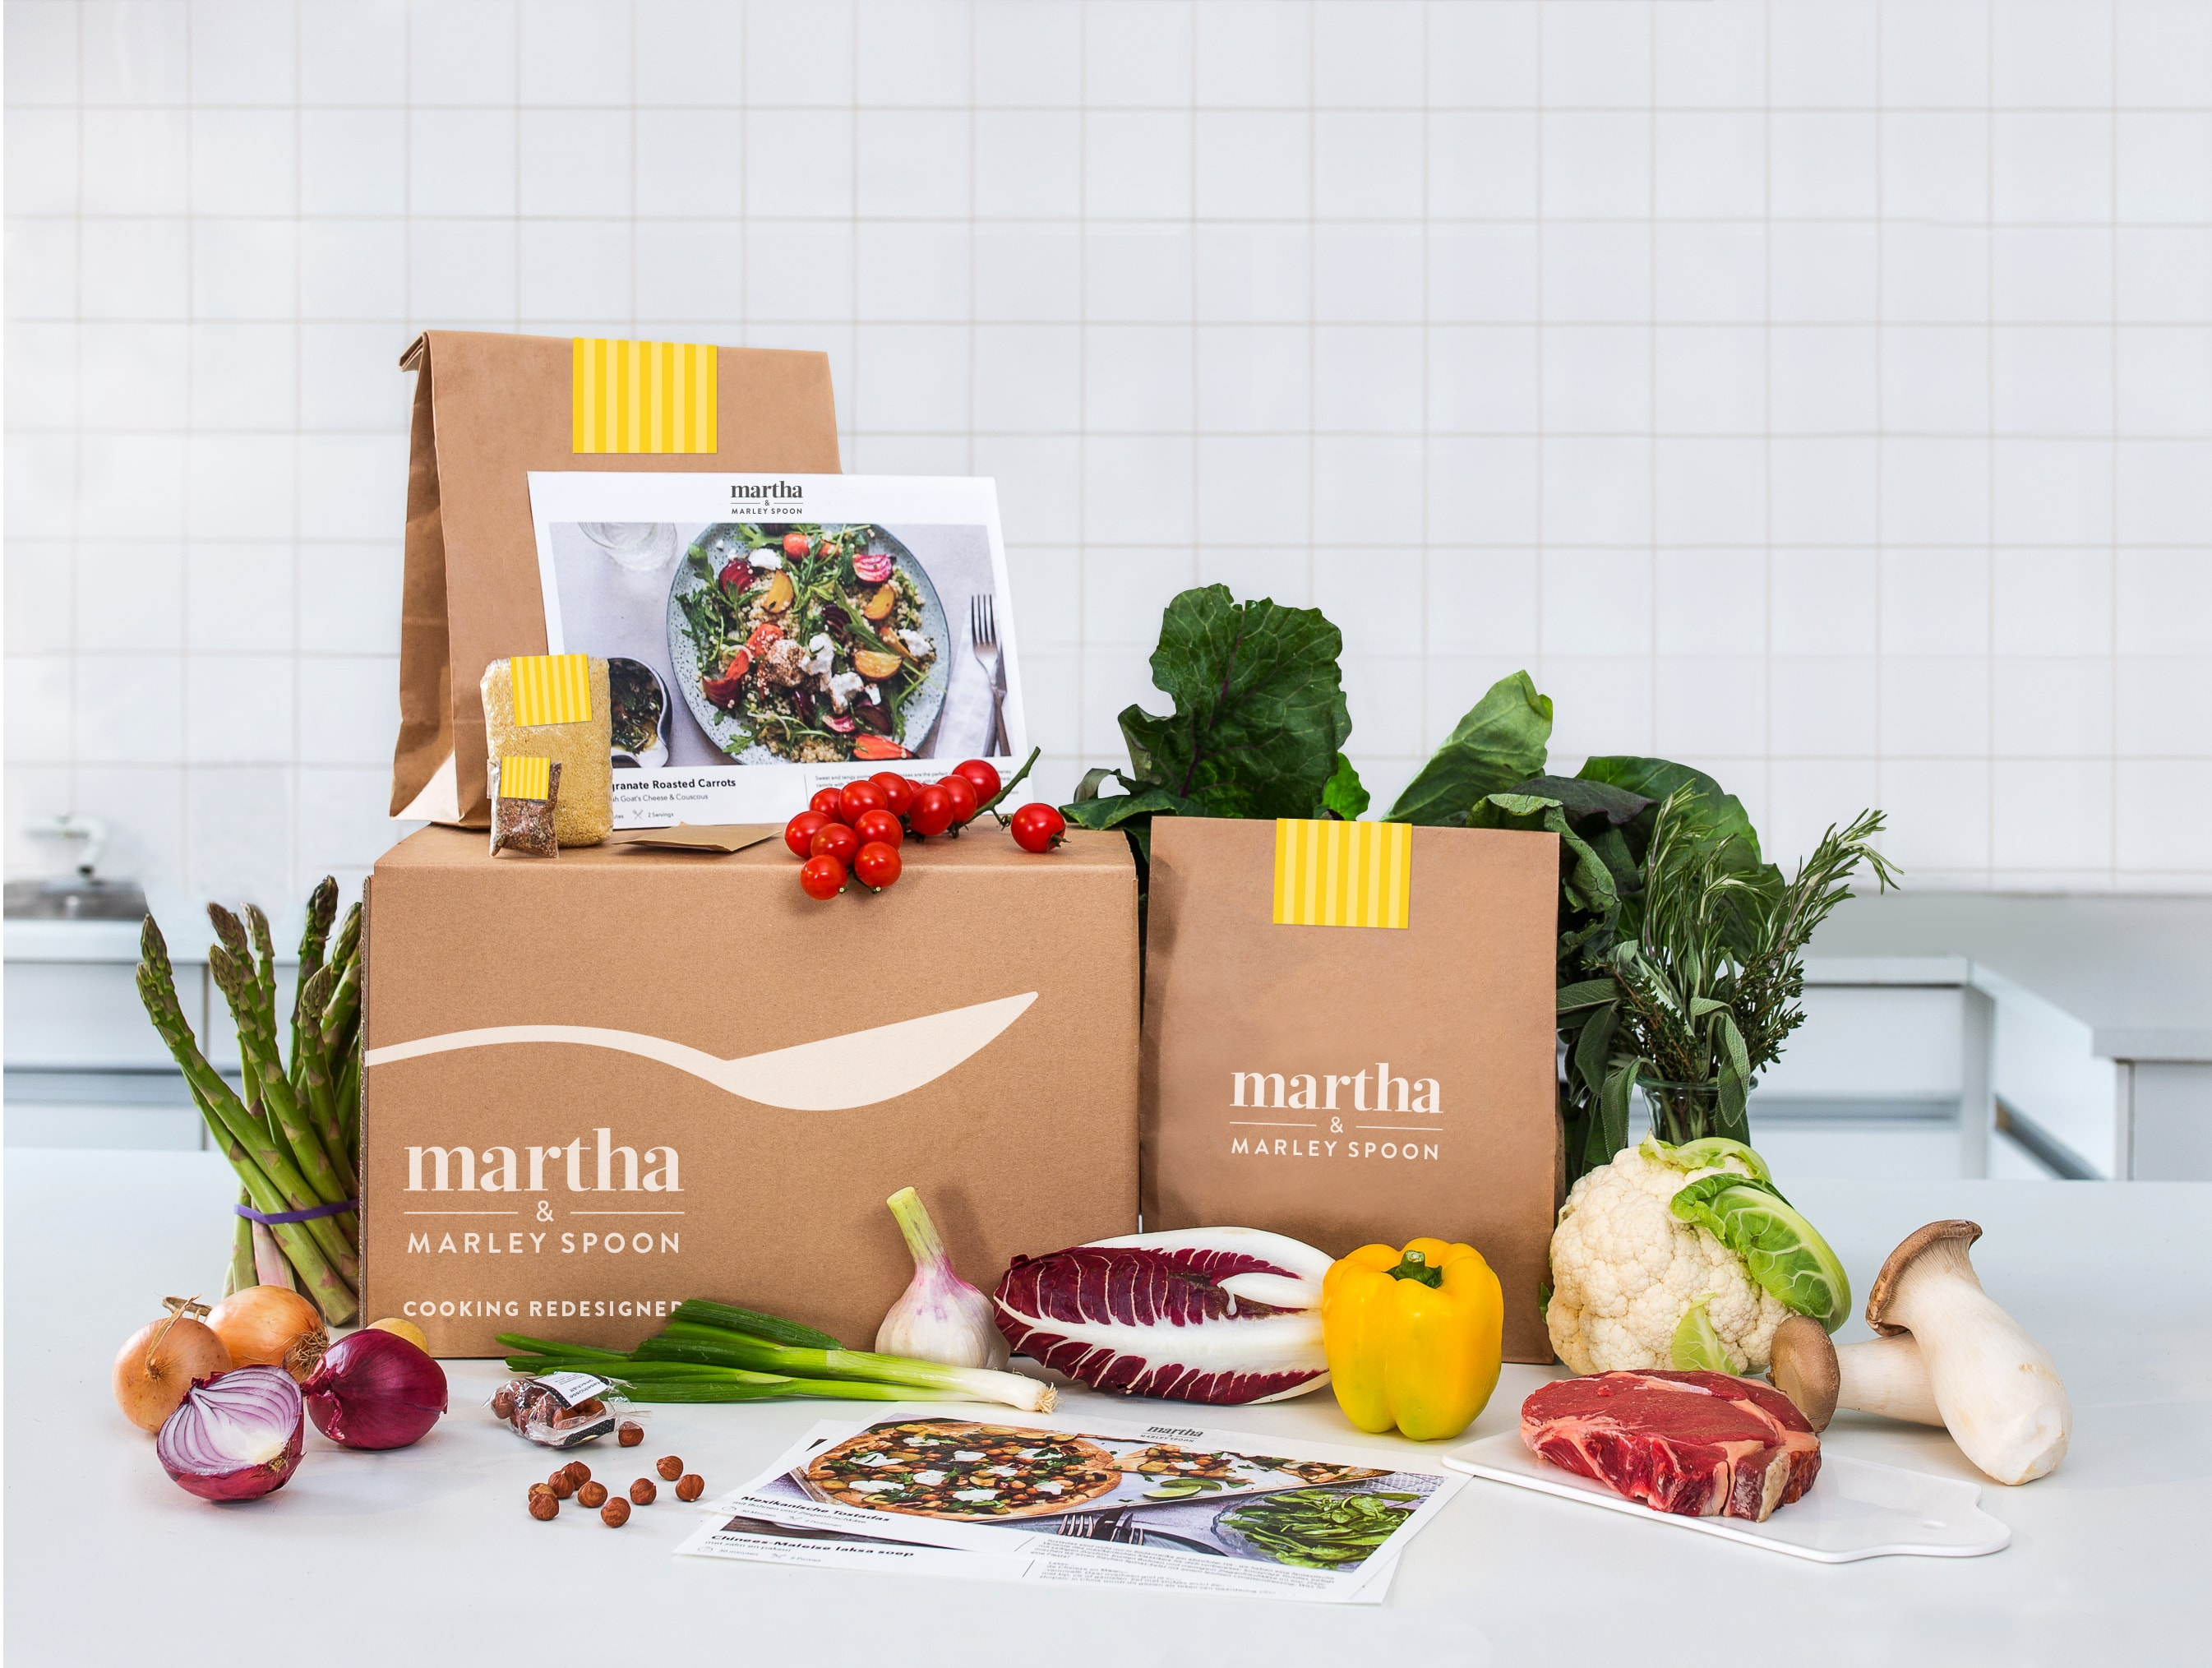 Martha and Marley Spoon food subscription box with fresh ingredients on a white table.